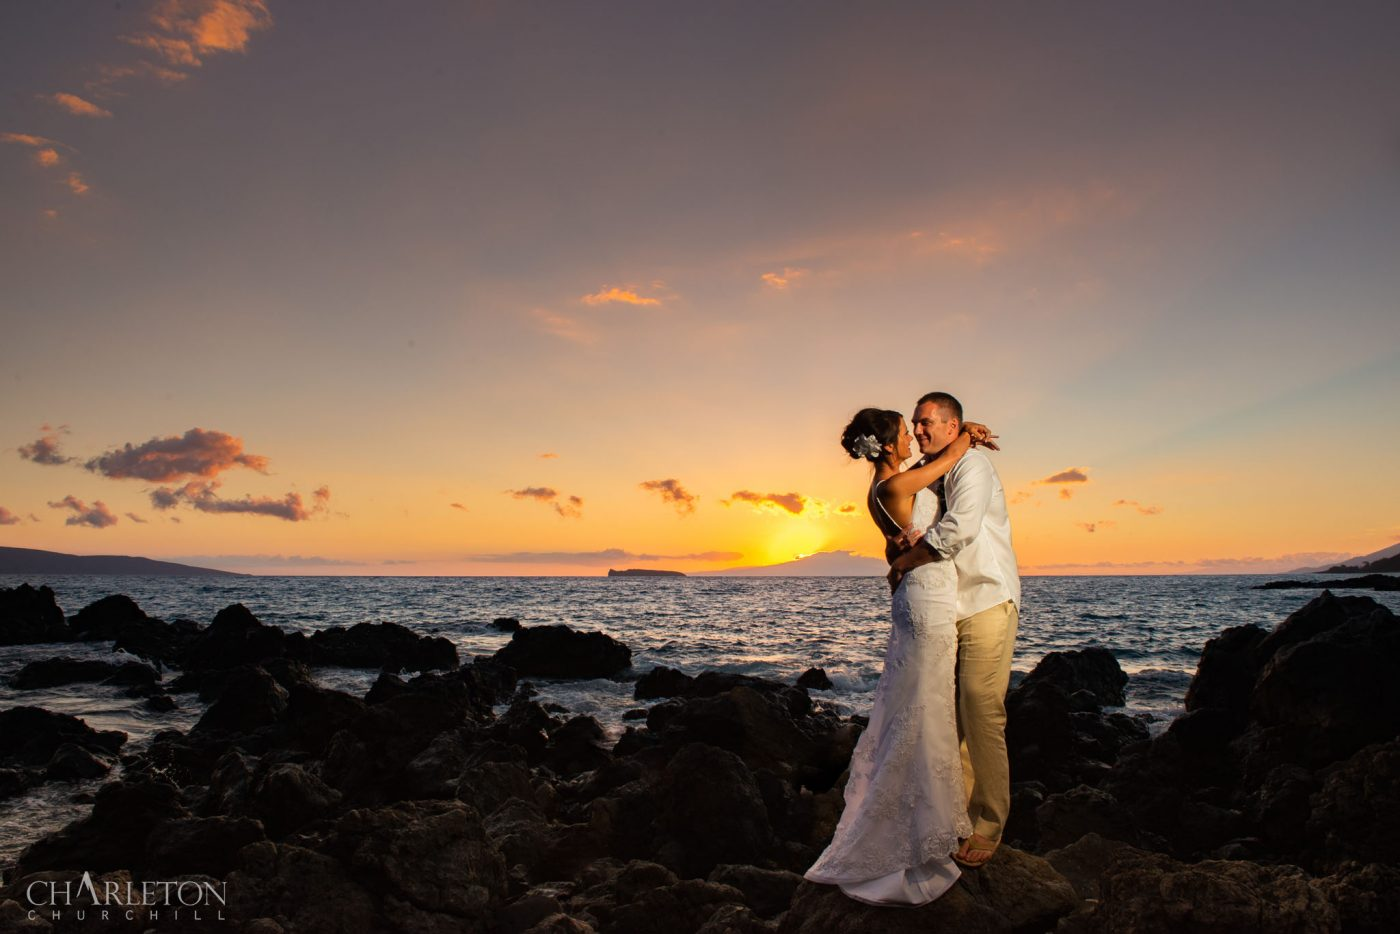 maui wedding photographer, eloping couple married on the island near wailea during a sunset